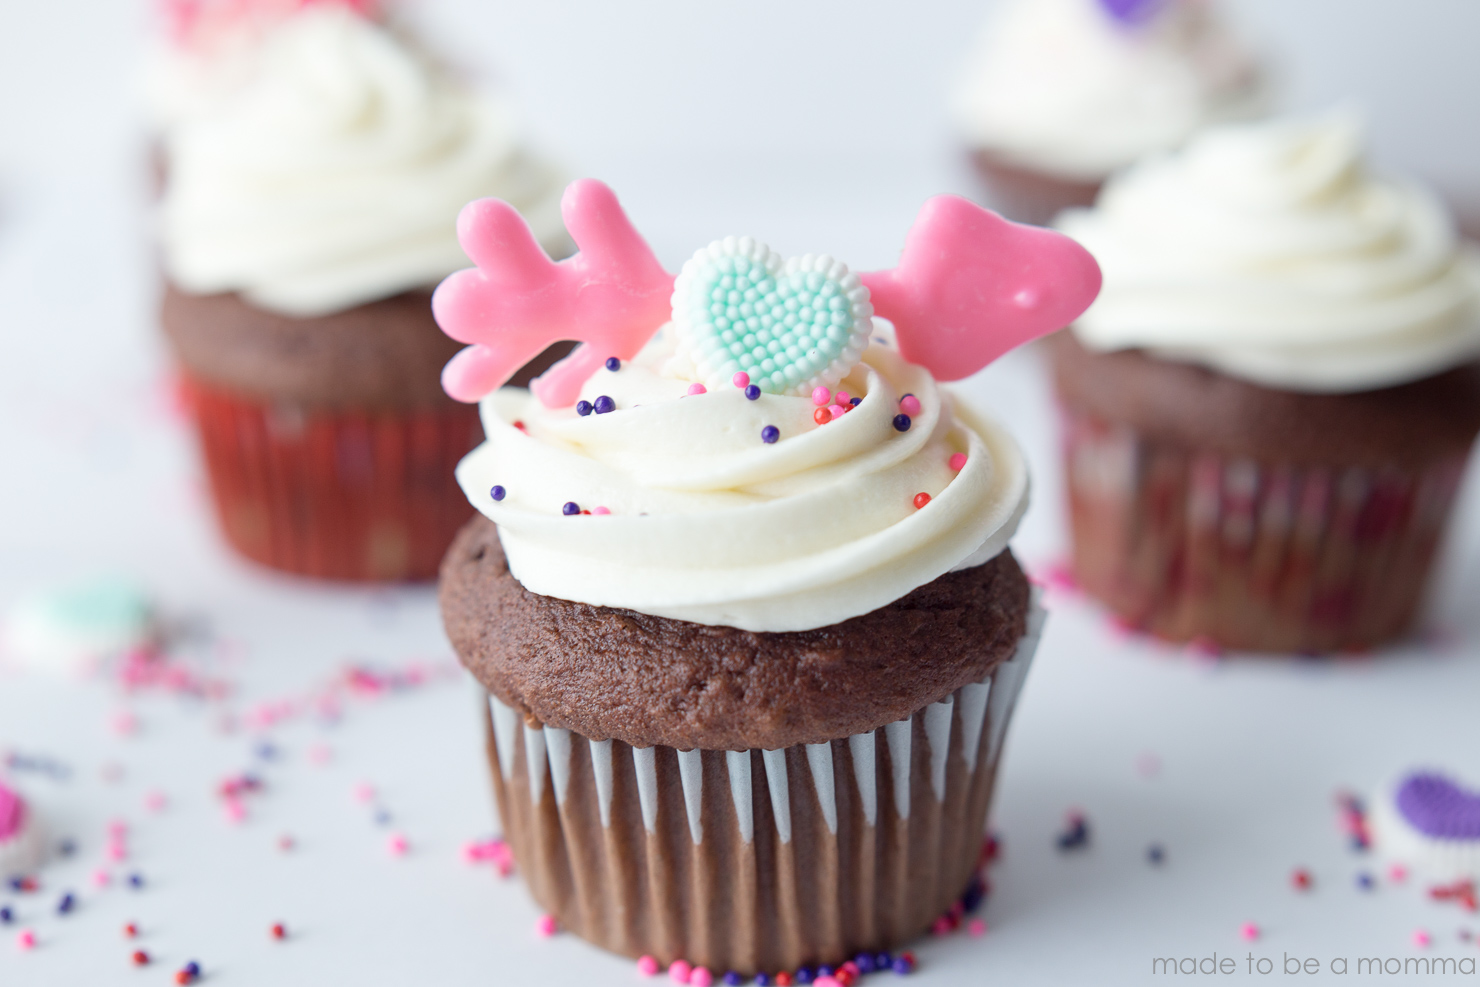 Cupid's Arrow Cupcakes - Made To Be A Momma